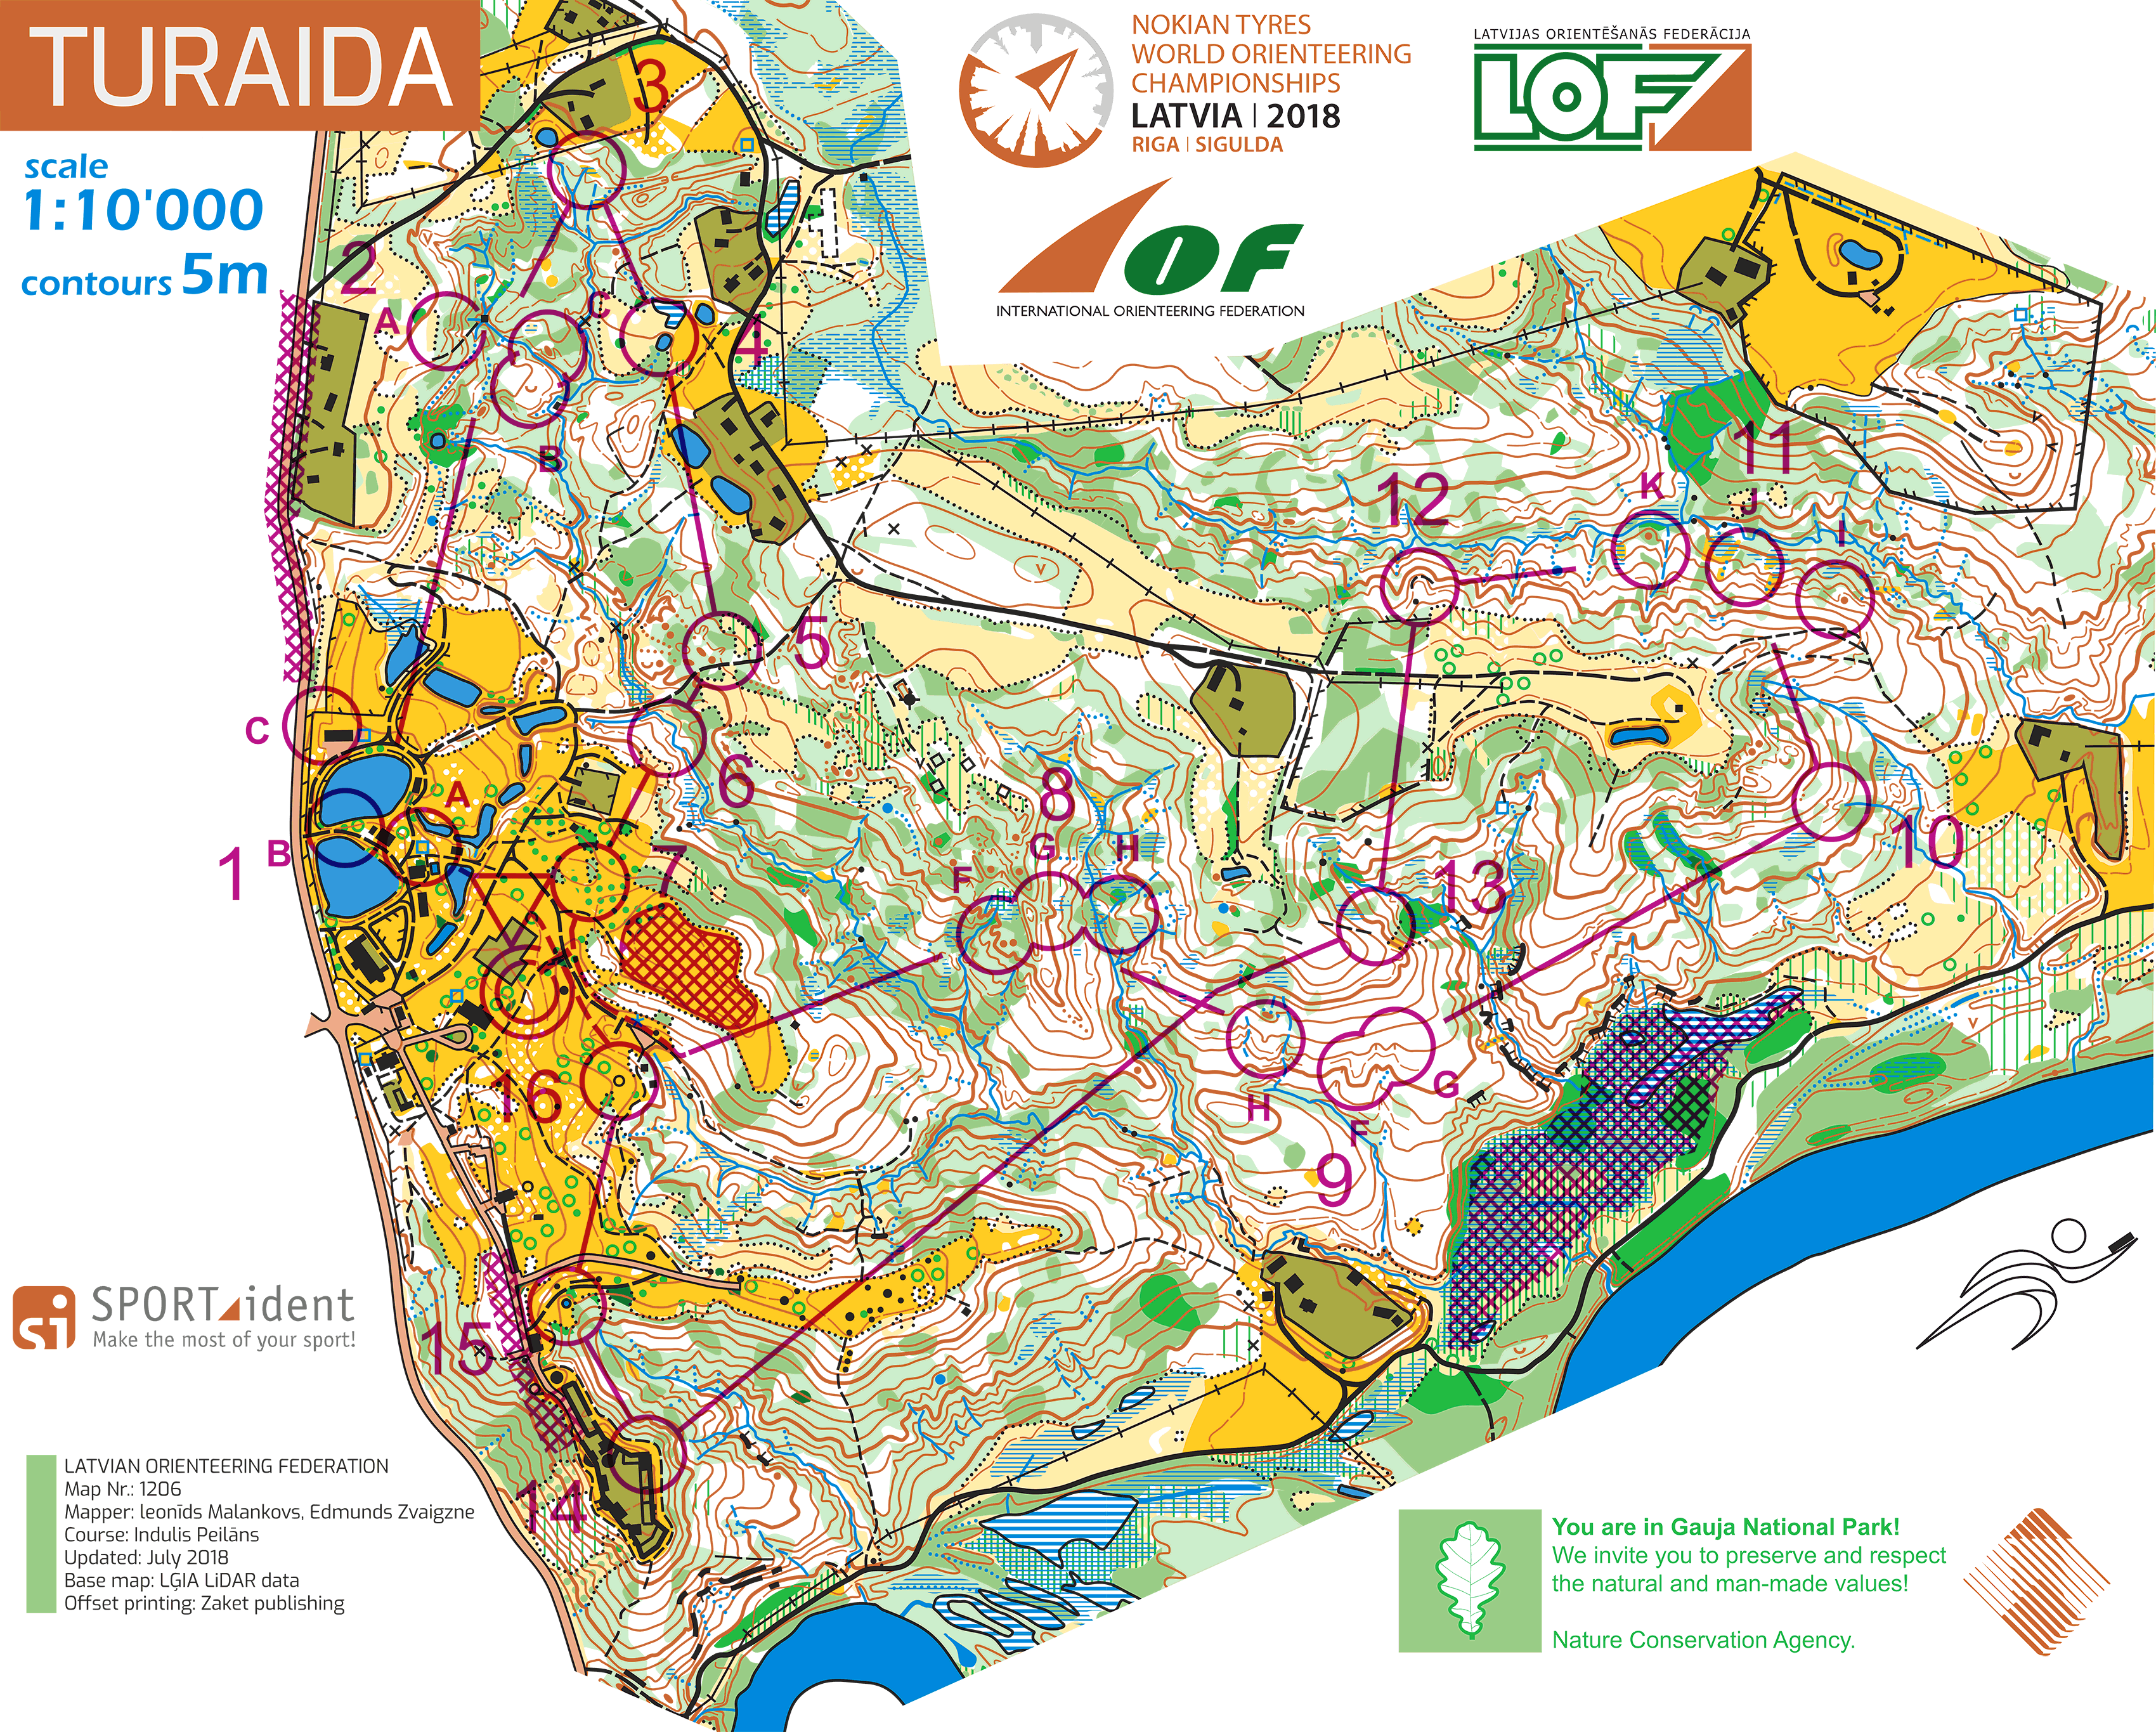 Races Of The World Map.Woc 2018 Relay Maps And Results World Of O News